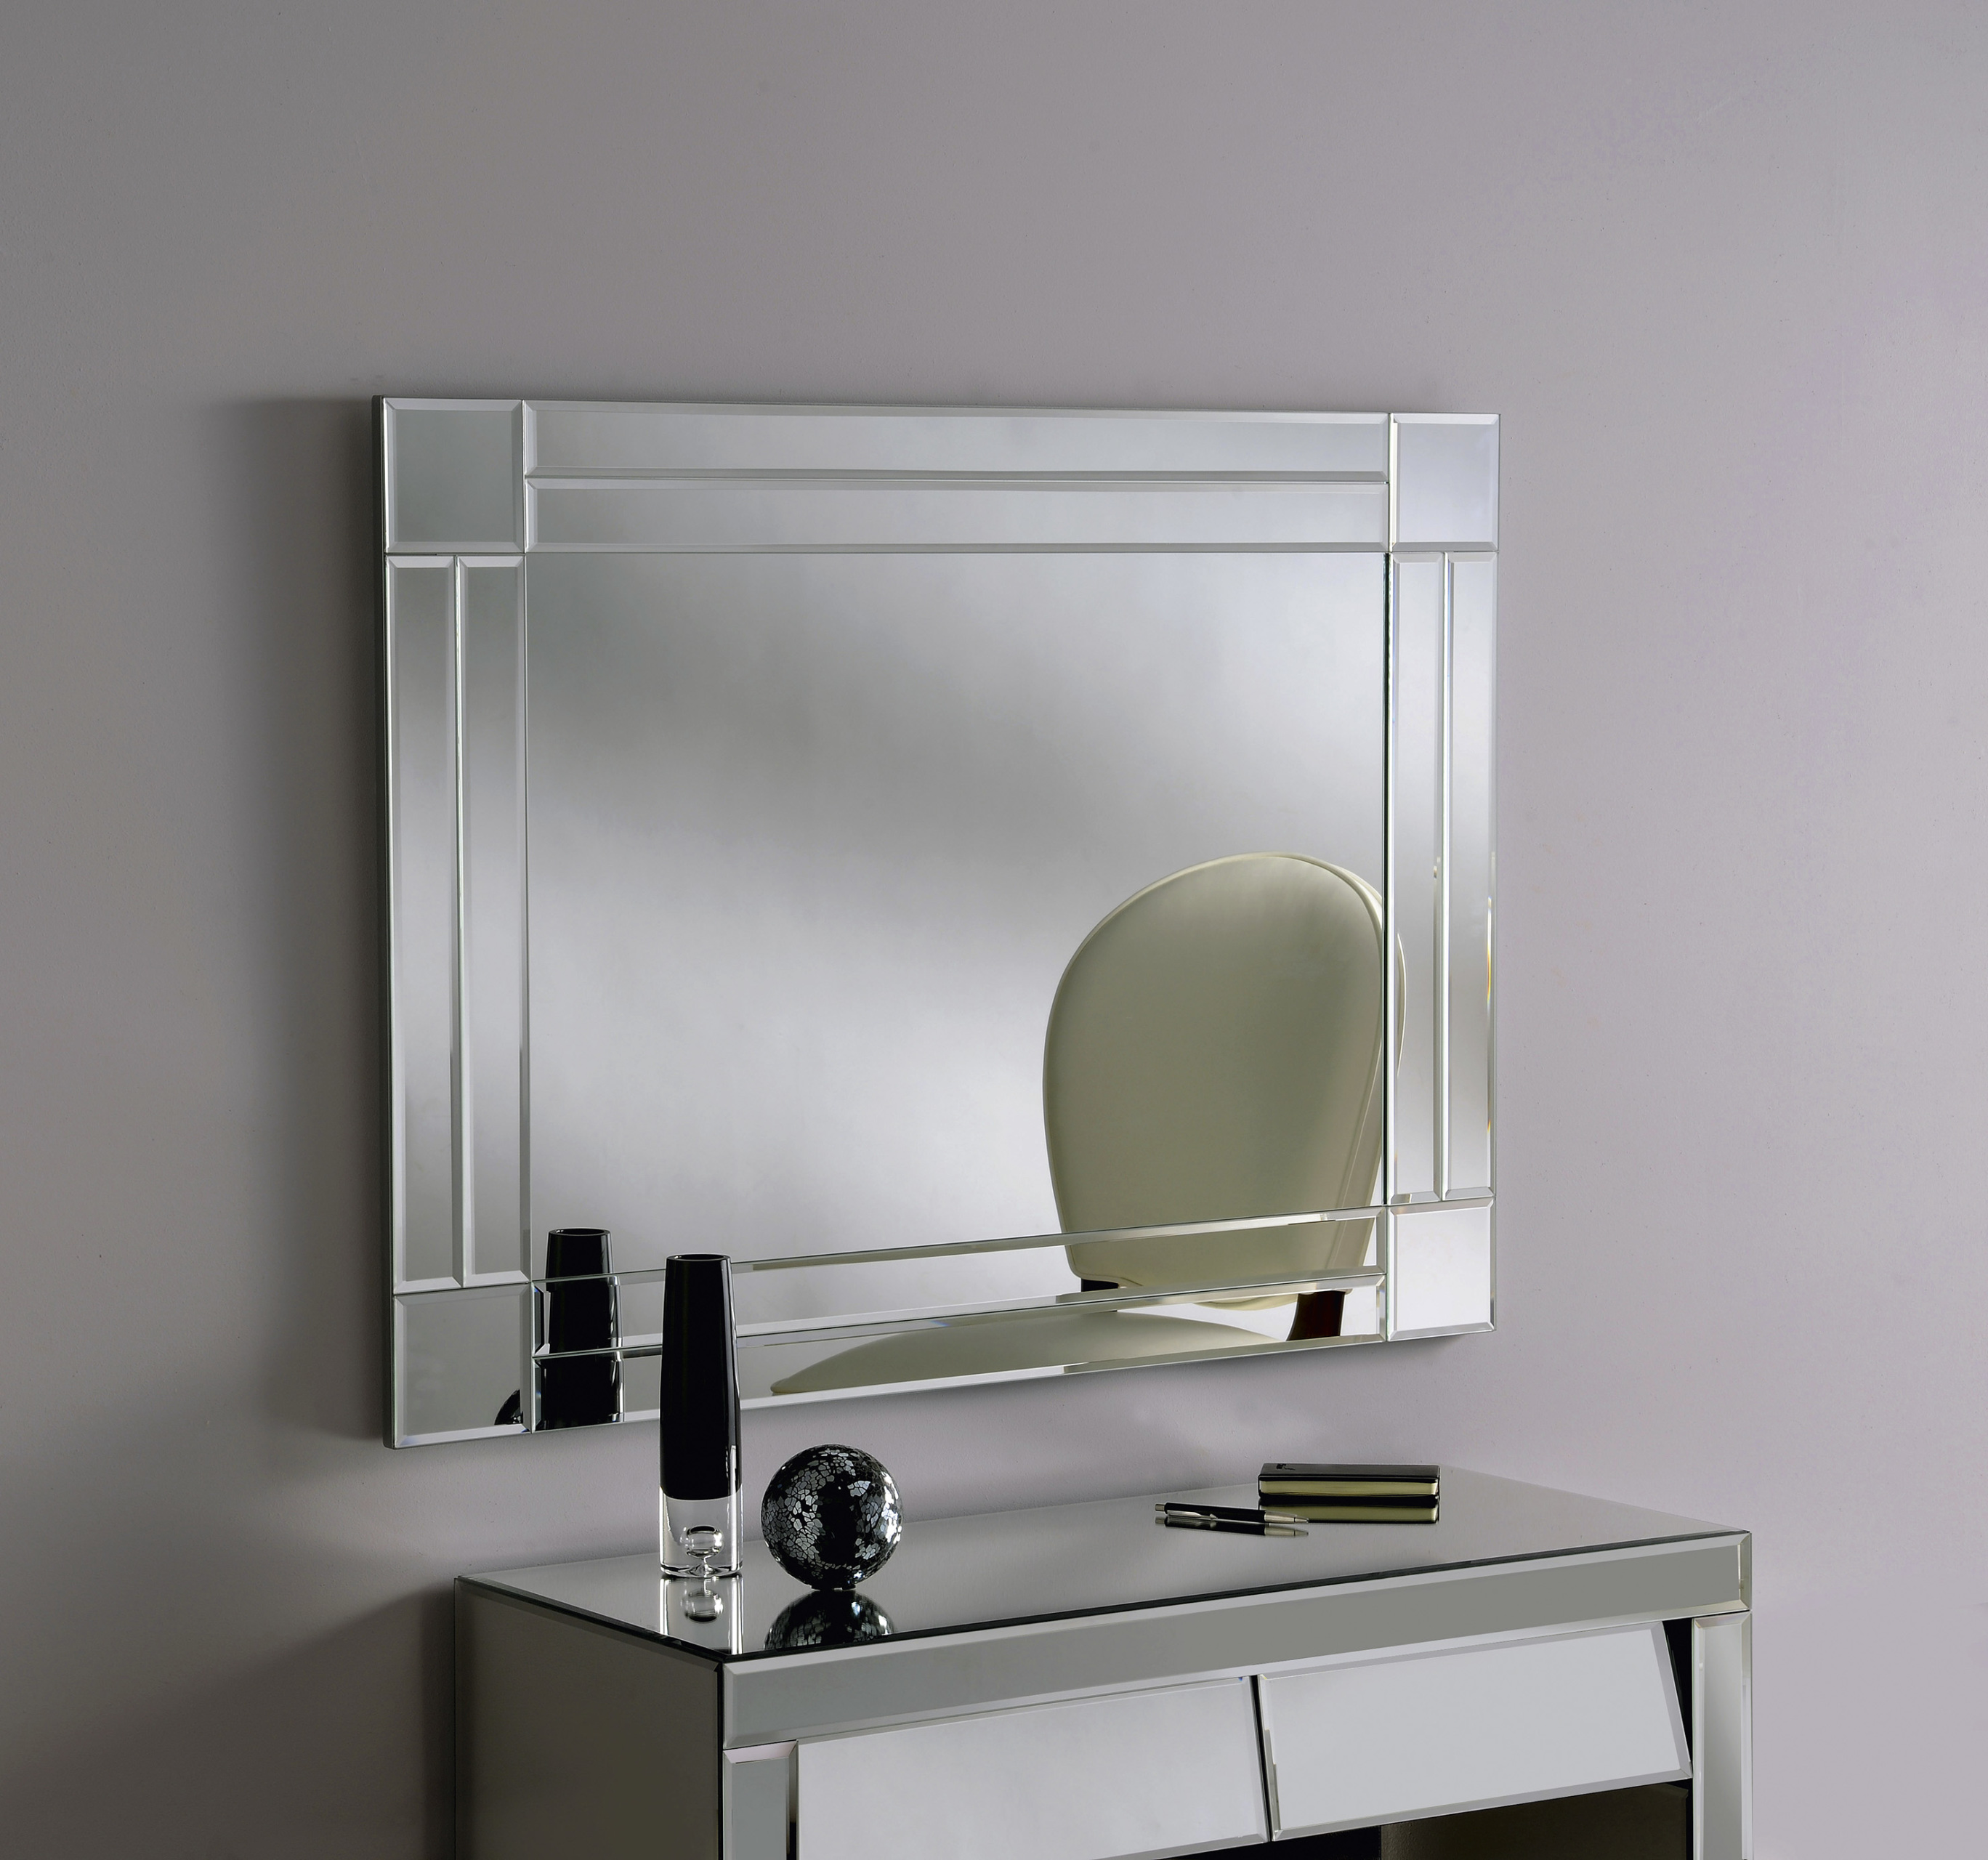 Deco Bathroom Mirror: BV60 Mirror ART DECO WALL MIRROR Simple Modern Rectangle